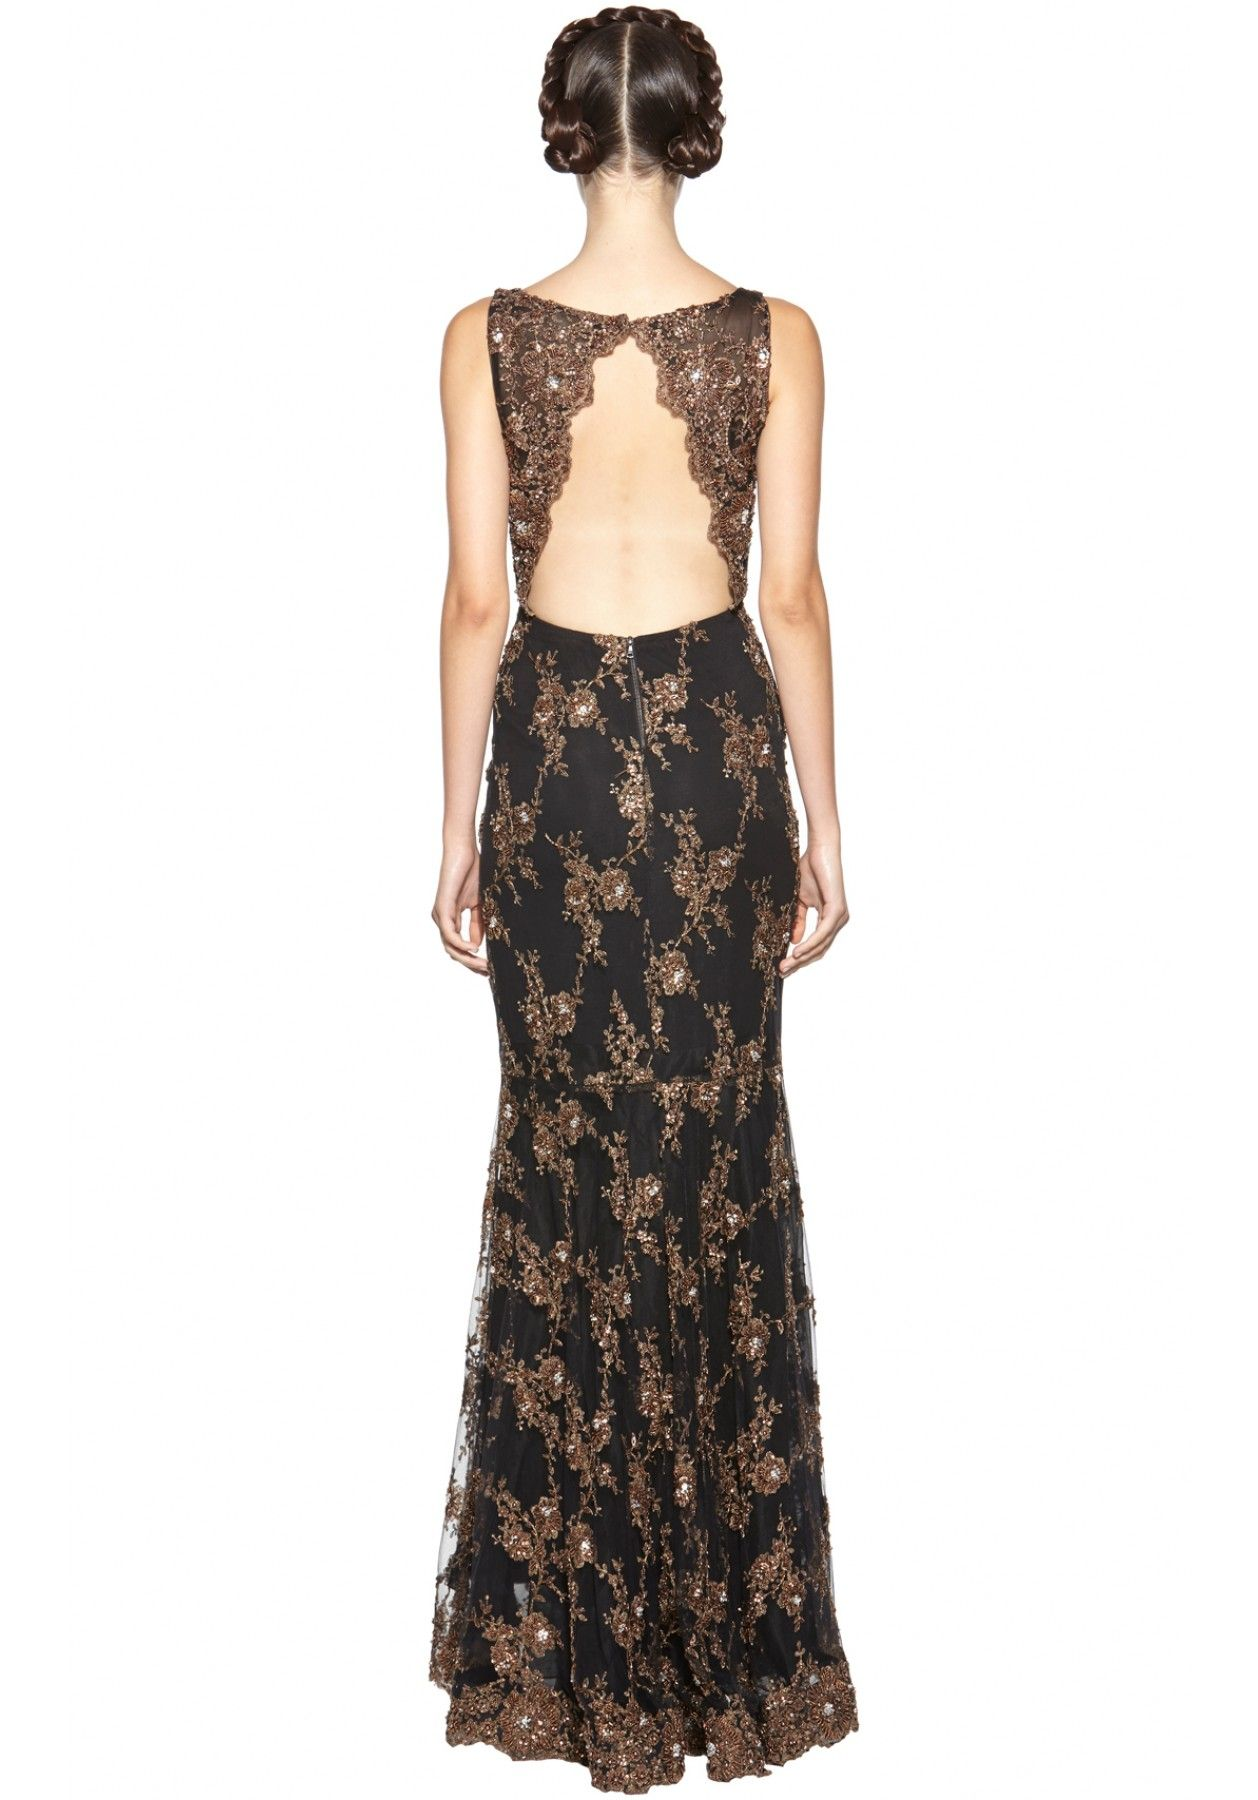 Alice and olivia long evening dresses